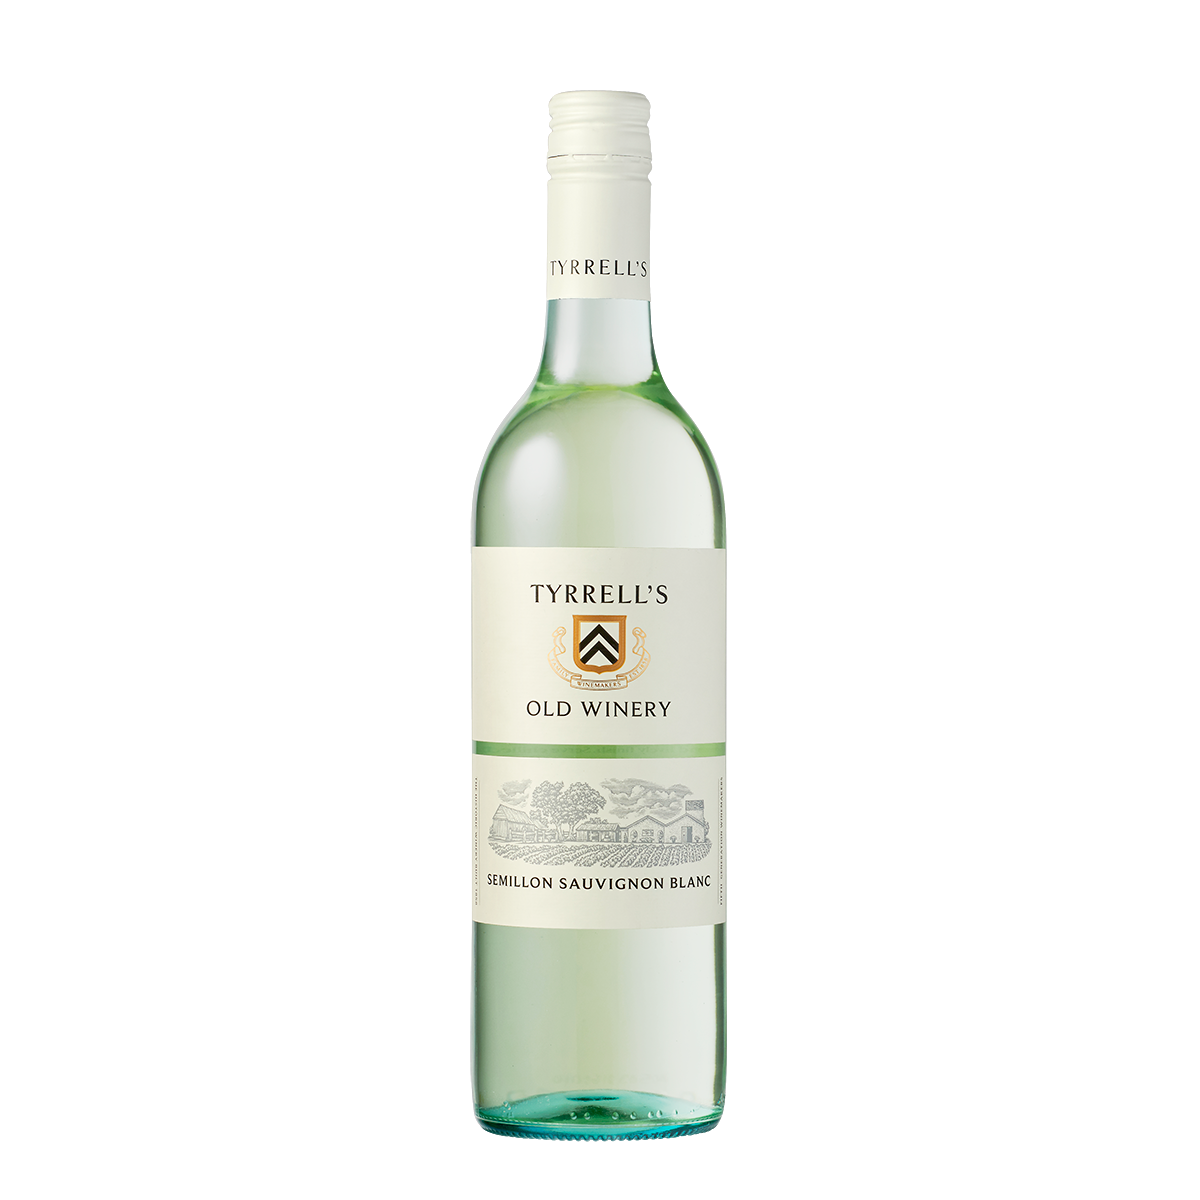 Tyrrells Old Winery Semillon Sauvignon Blanc 2019 (12 Bottles)